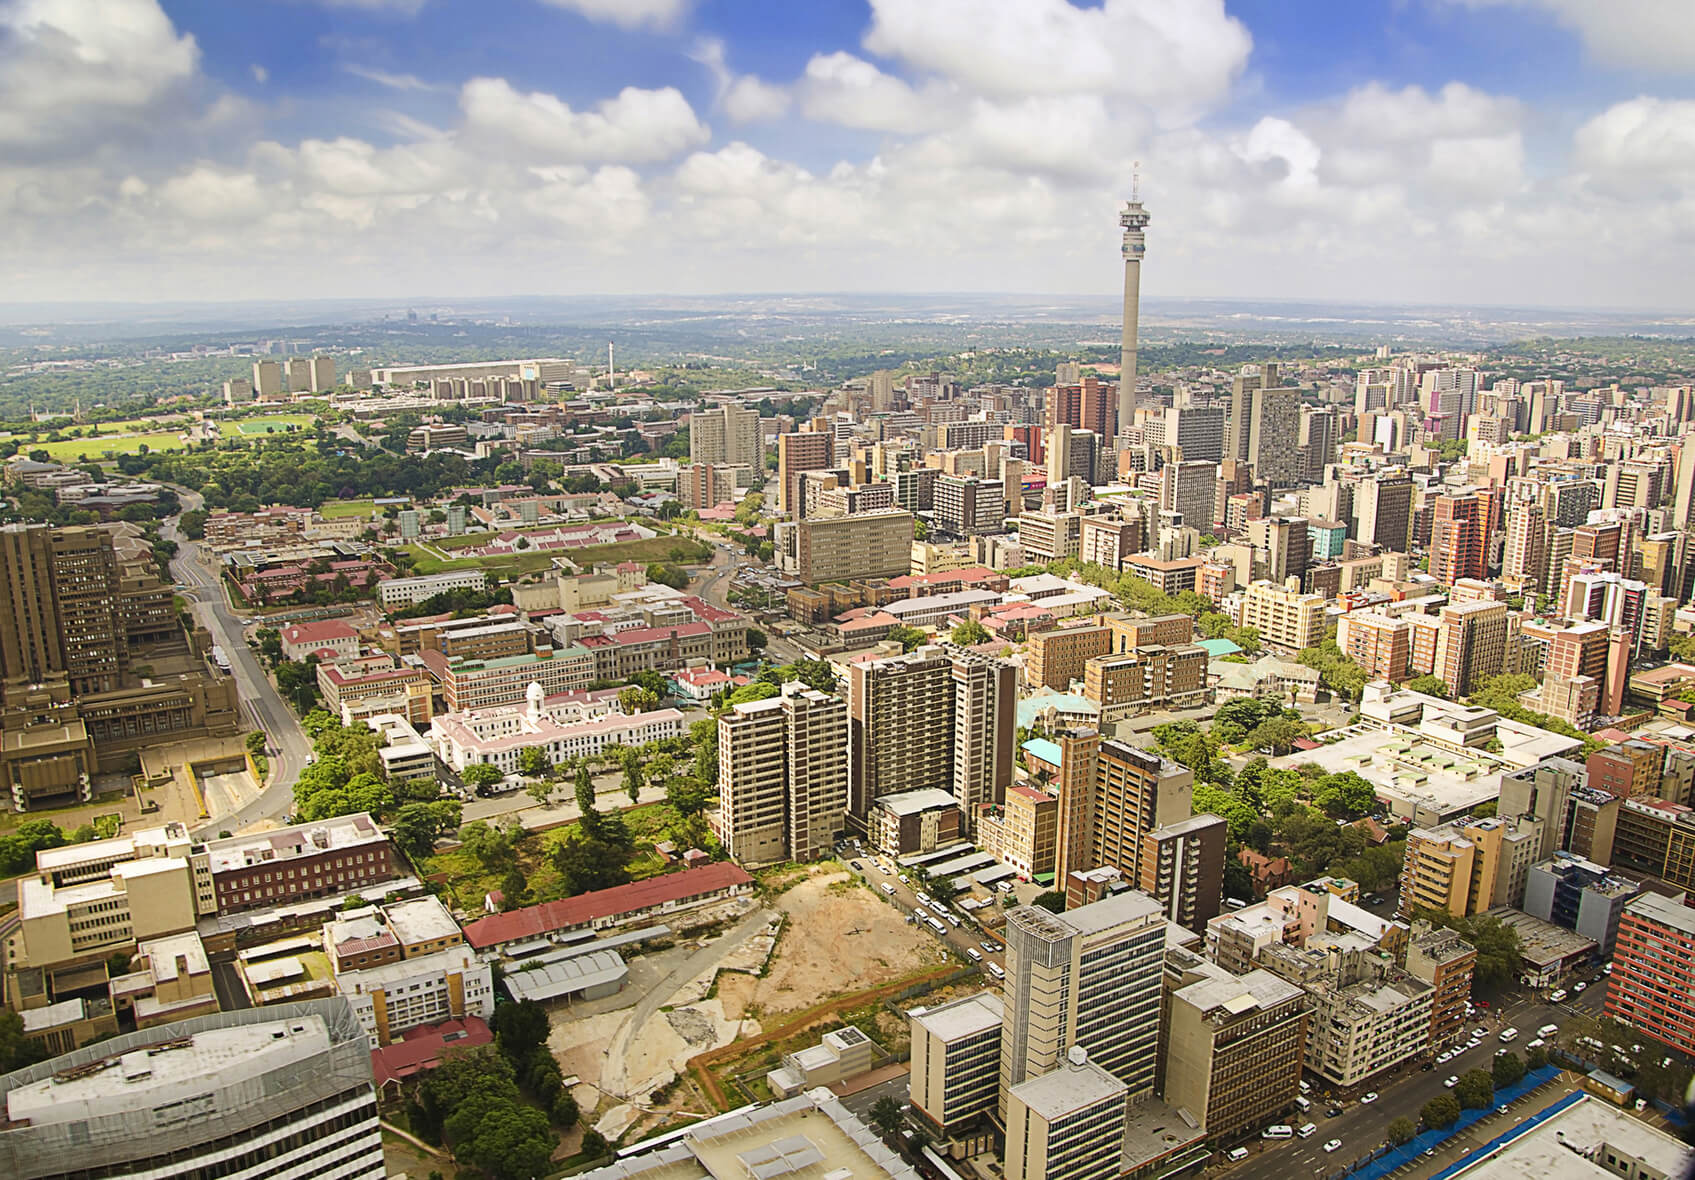 Swiss cities to Johannesburg, South Africa from only €390 roundtrip